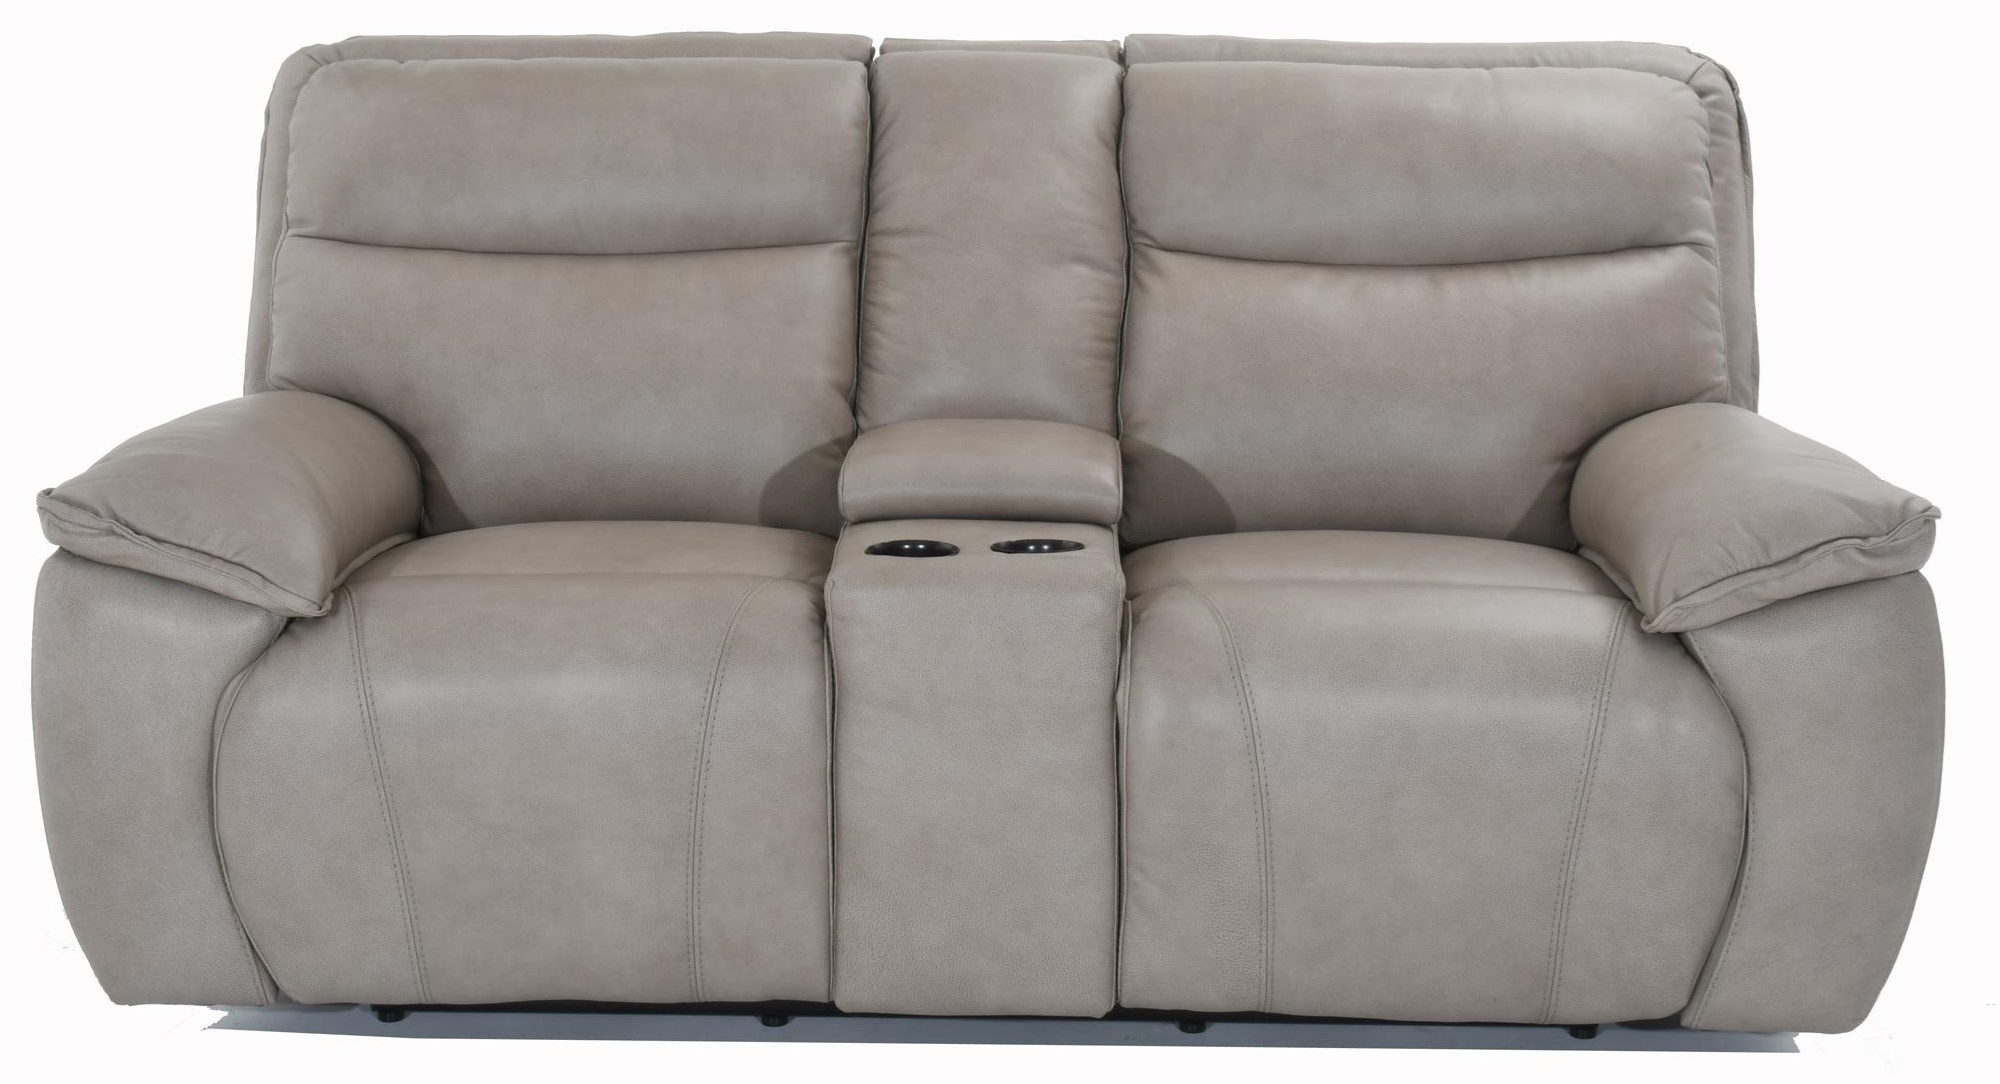 E1578 Console Power Reclining Sofa by Futura Leather at Baer's Furniture